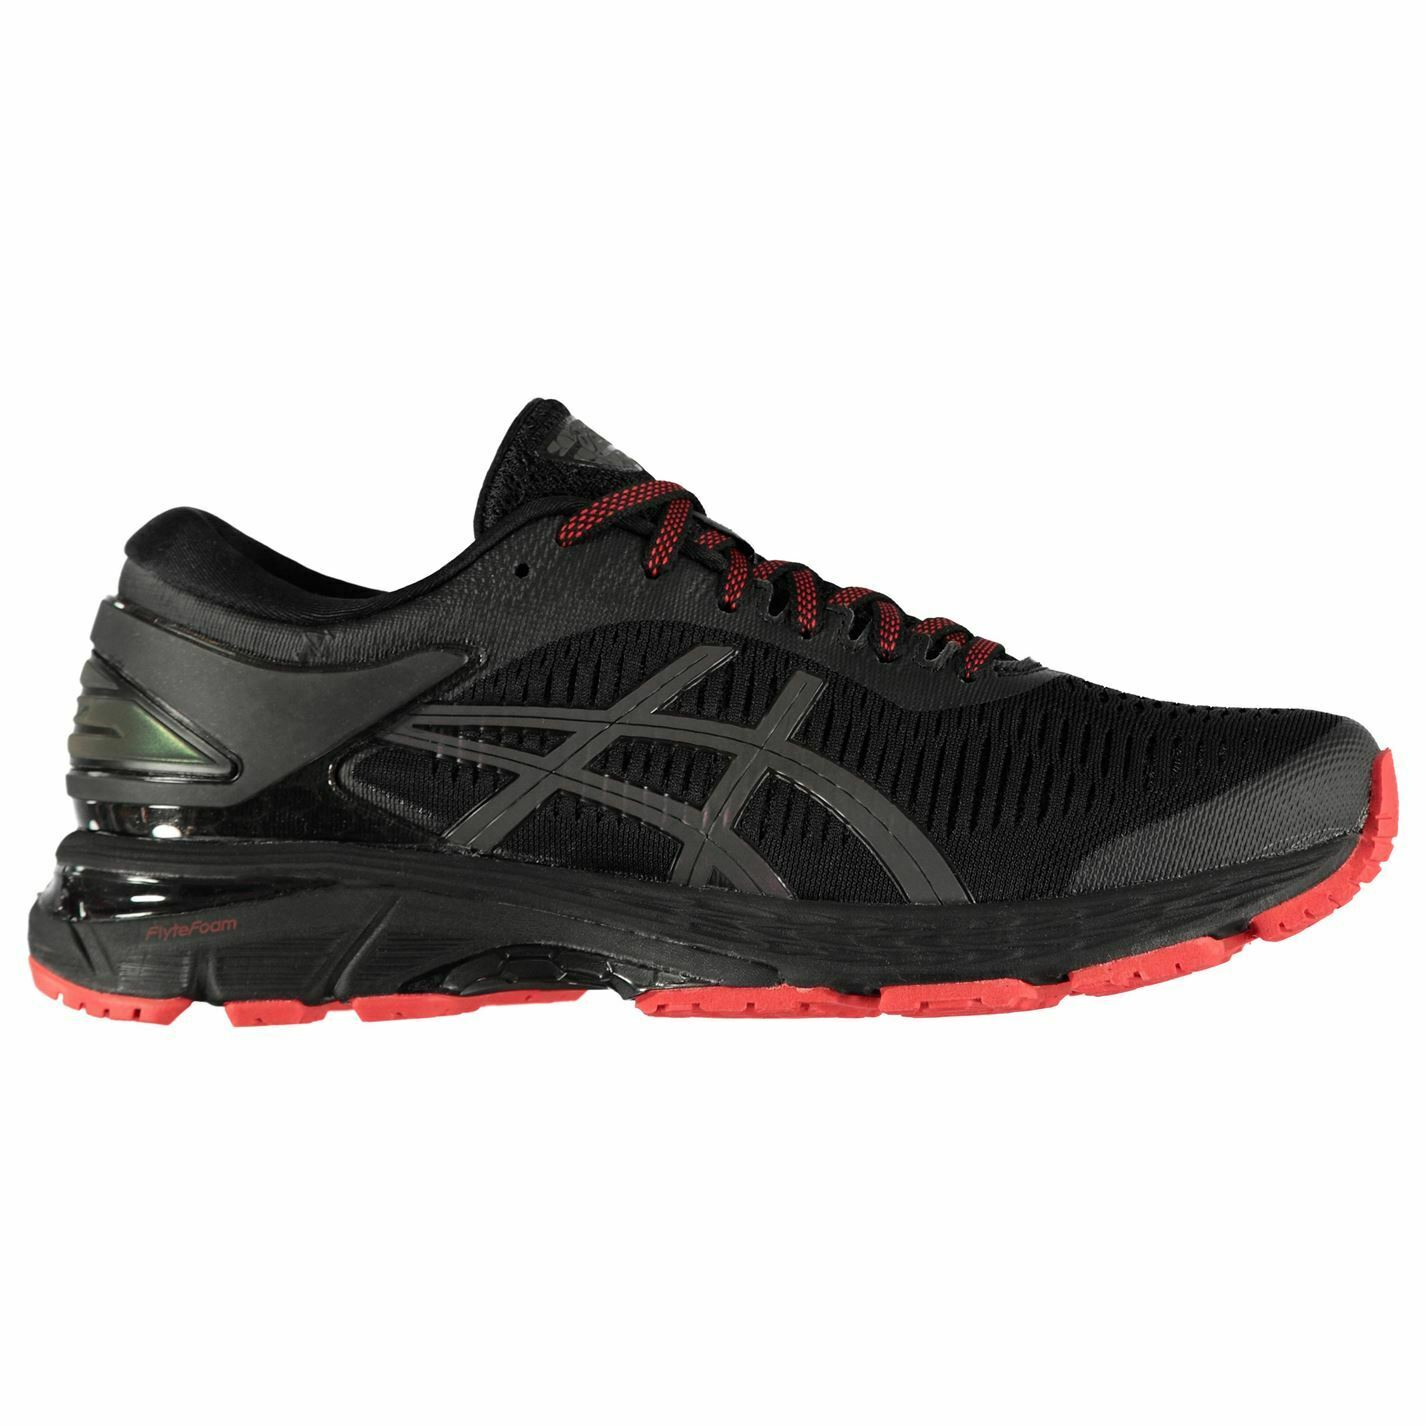 Asics Mens Gel Kayano 25 Lite Show Running shoes Road Lace Up Mesh Upper